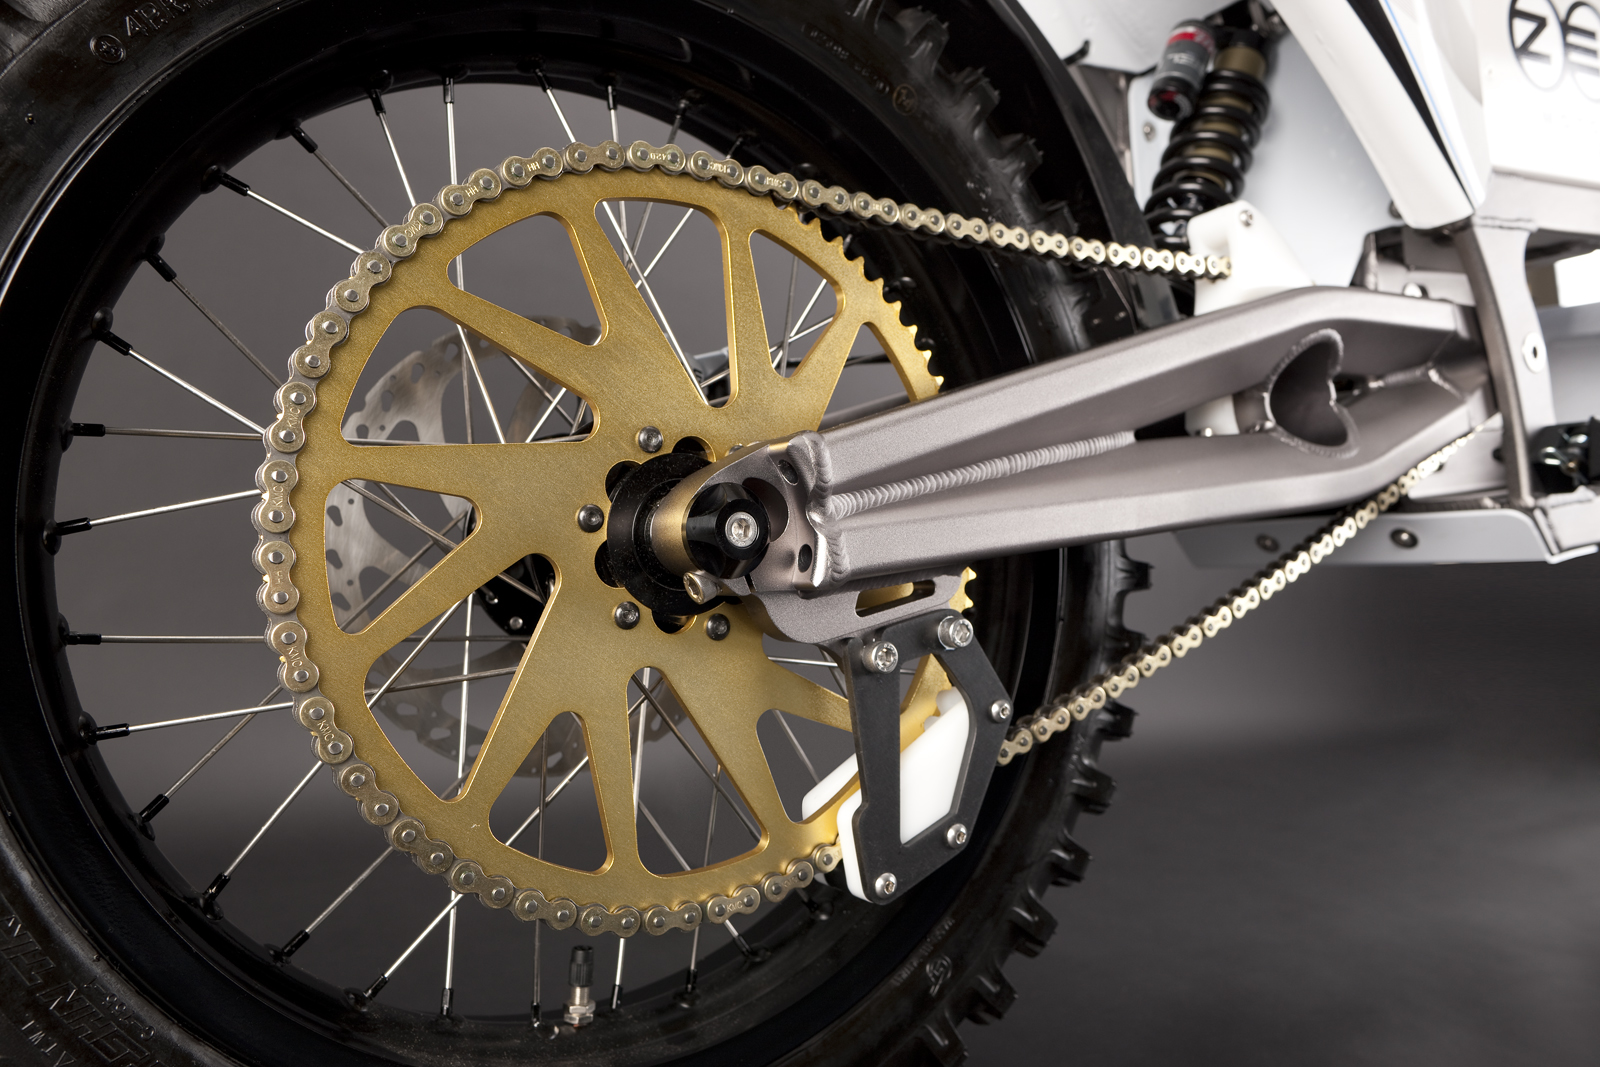 '.2010 Zero X Electric Motorcycle: Rear Tire / Rear Shock.'